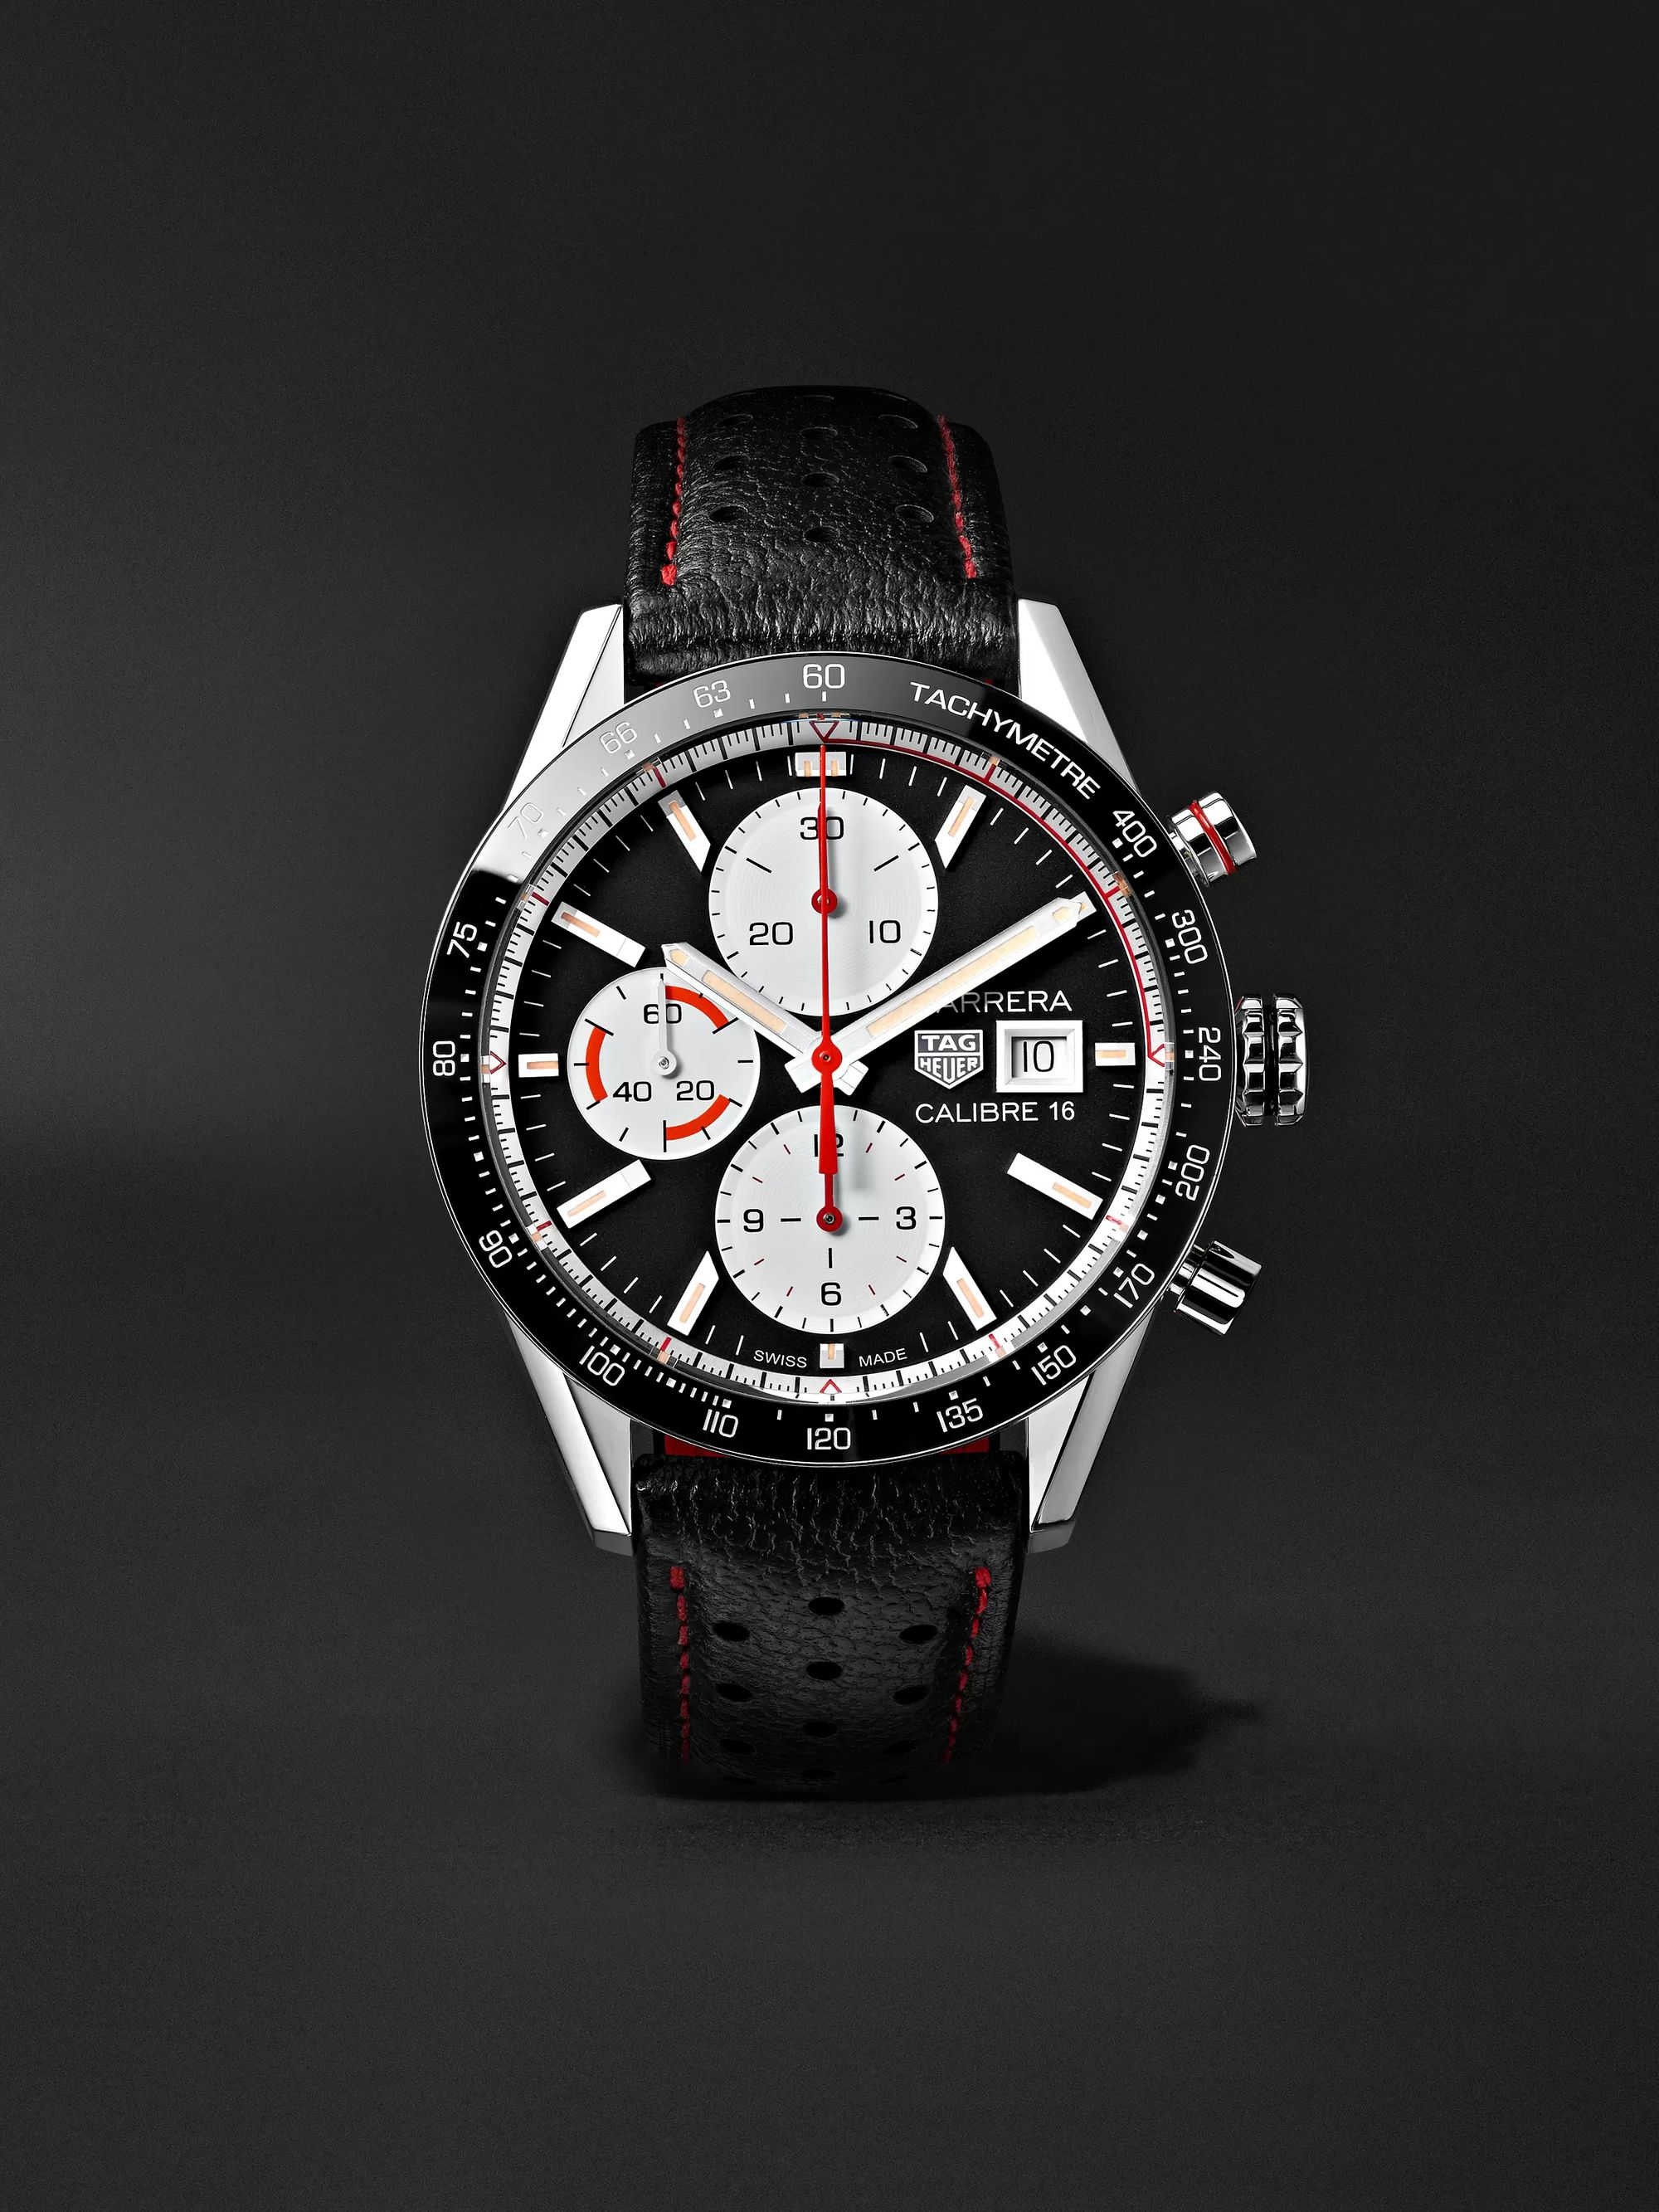 TAG Heuer Carrera Automatic Chronograph 41mm Steel and Leather Watch, Ref. No. CV201AP.FC6429